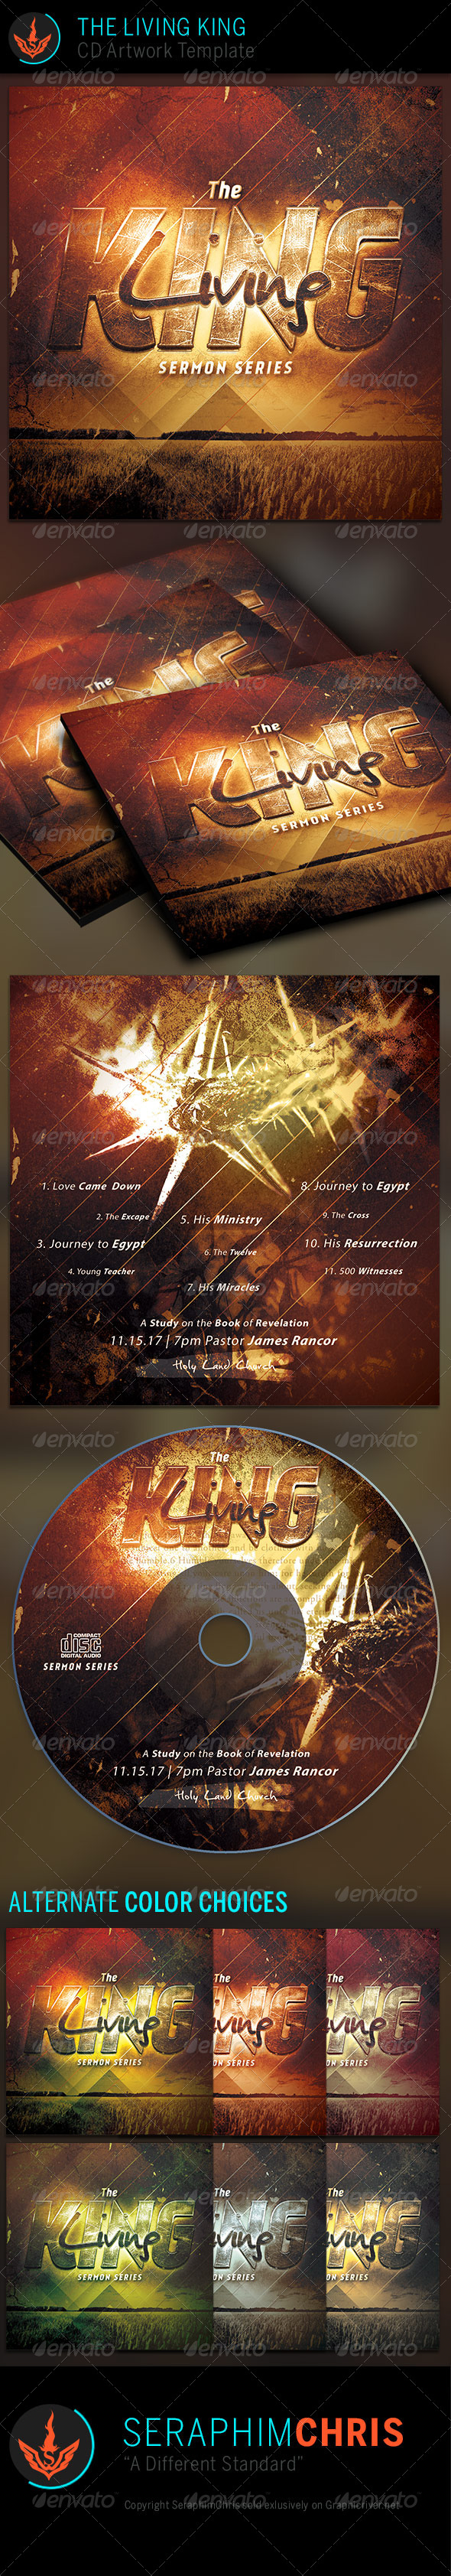 The Living King: CD Artwork Template - CD & DVD artwork Print Templates